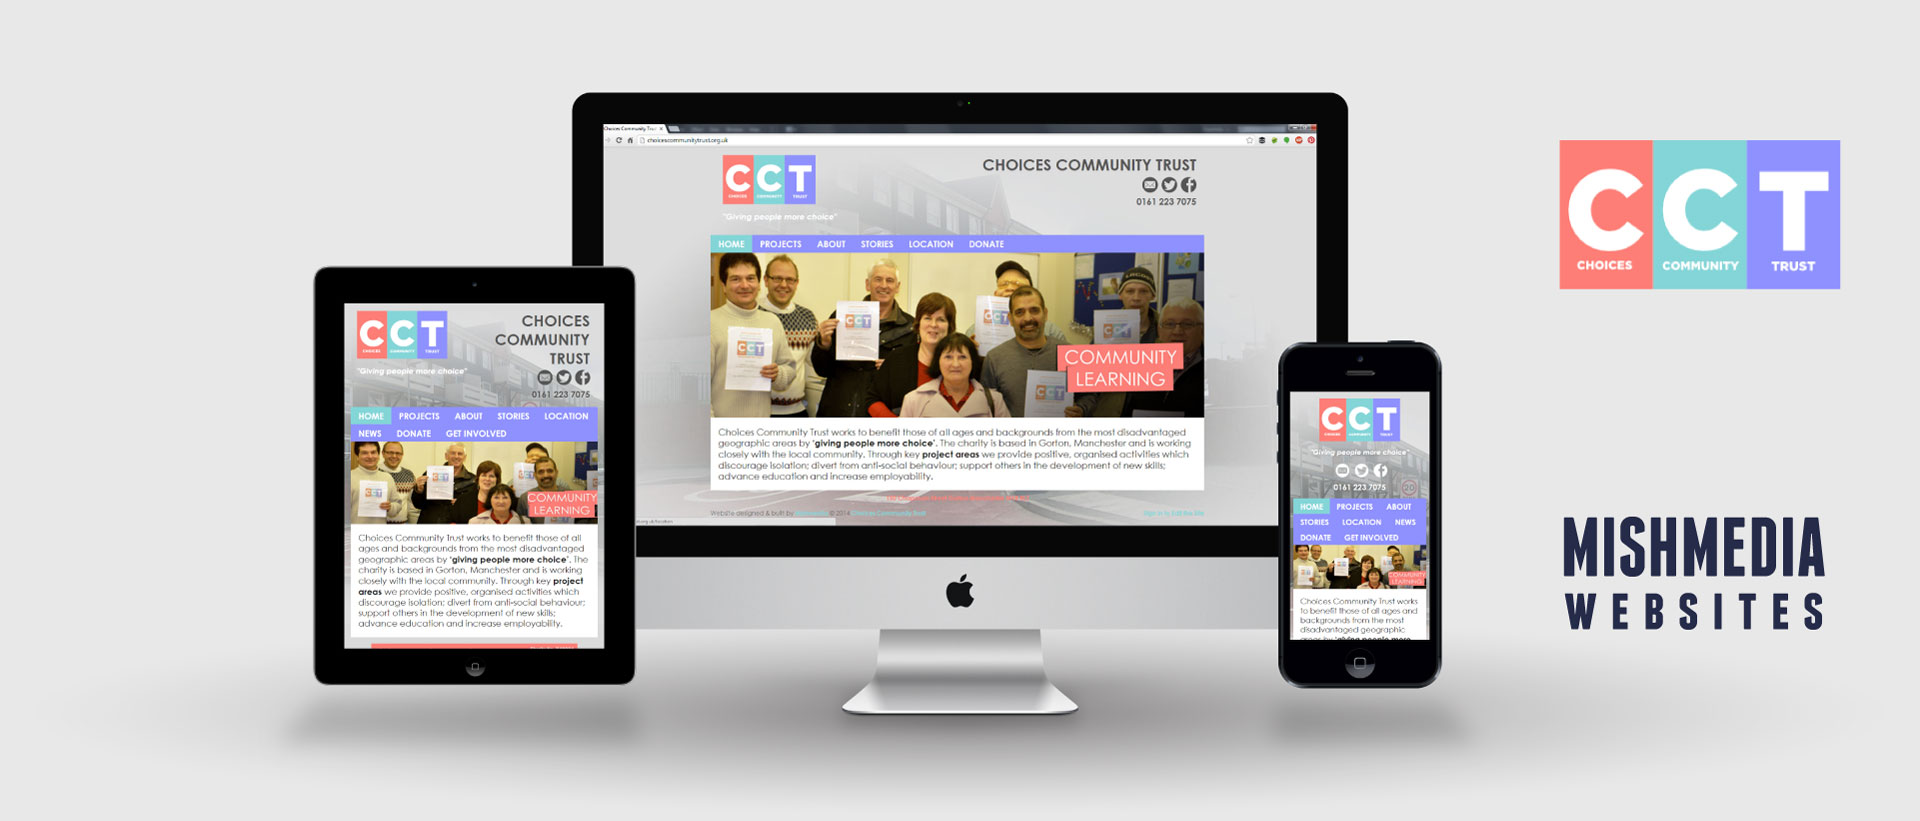 Choices Community Trust (CCT) Website